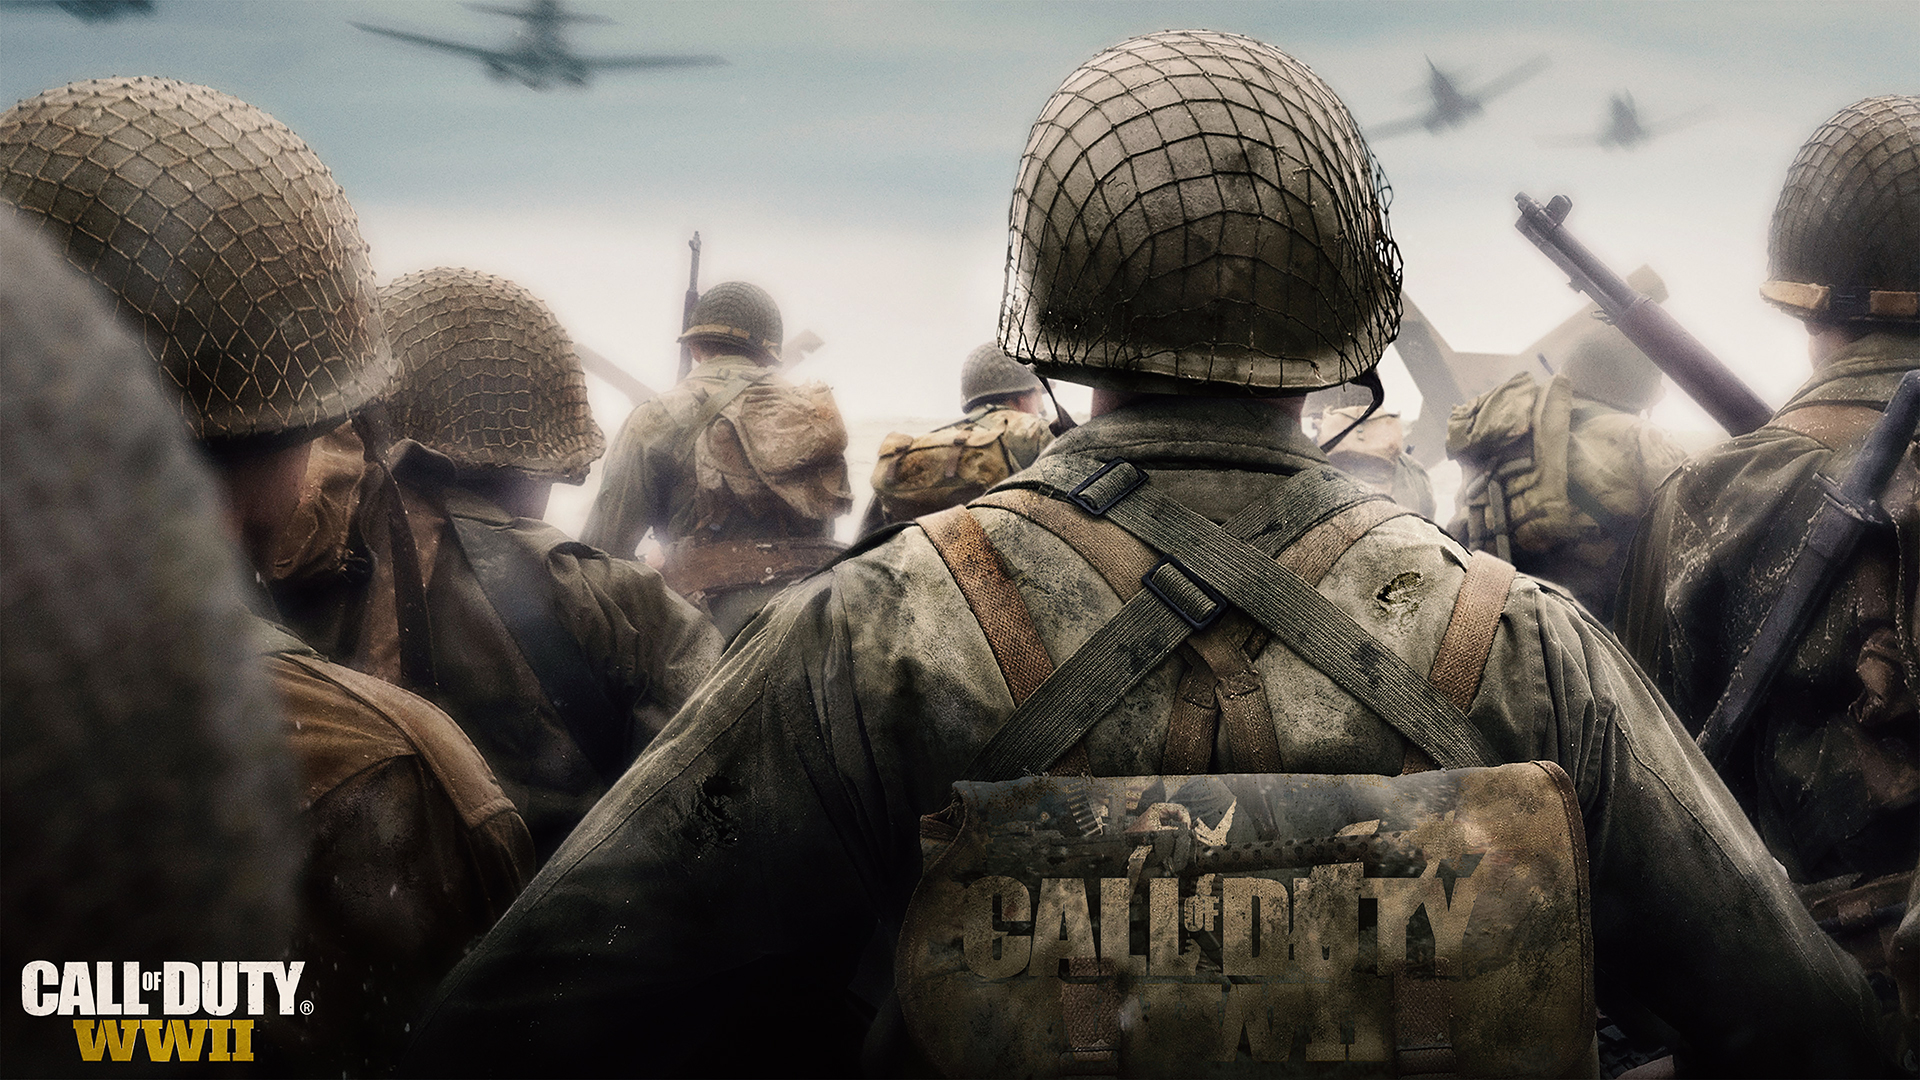 Free call of duty world war 2 chromebook wallpaper ready - Cod ww2 4k pc ...